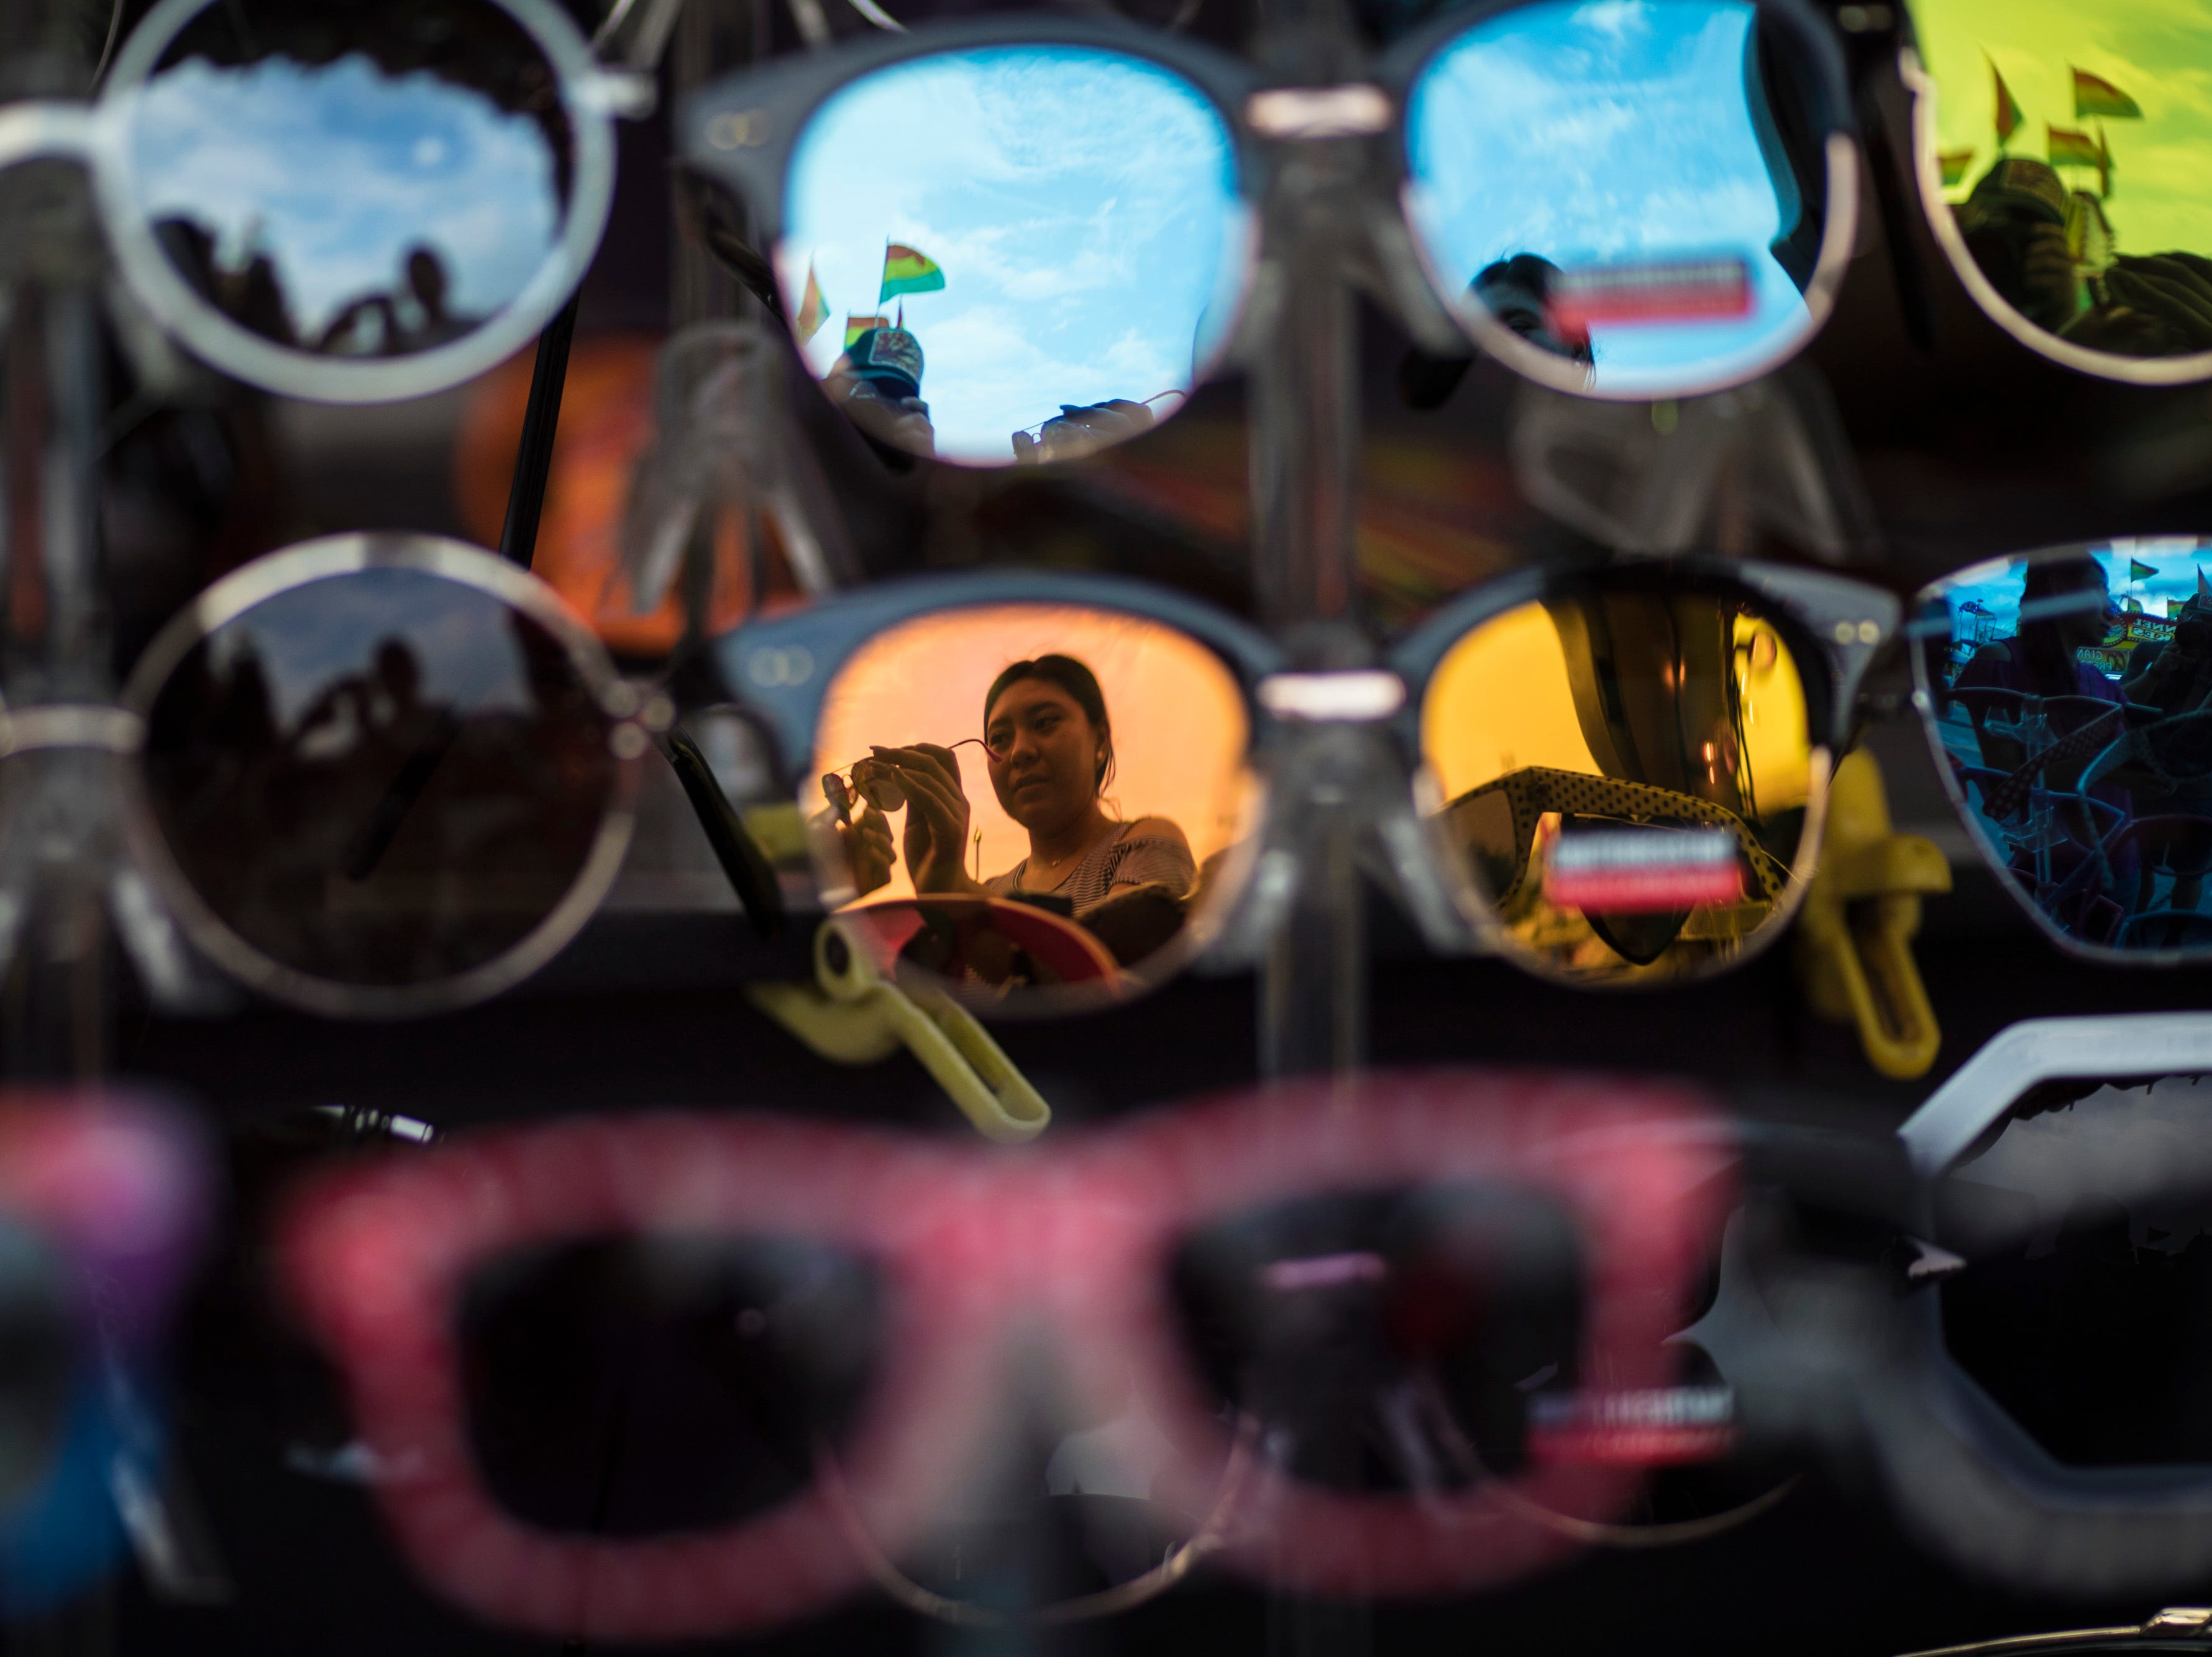 A woman tries on sunglasses for sale at the Kentucky State Fair on Monday. Aug. 20, 2018